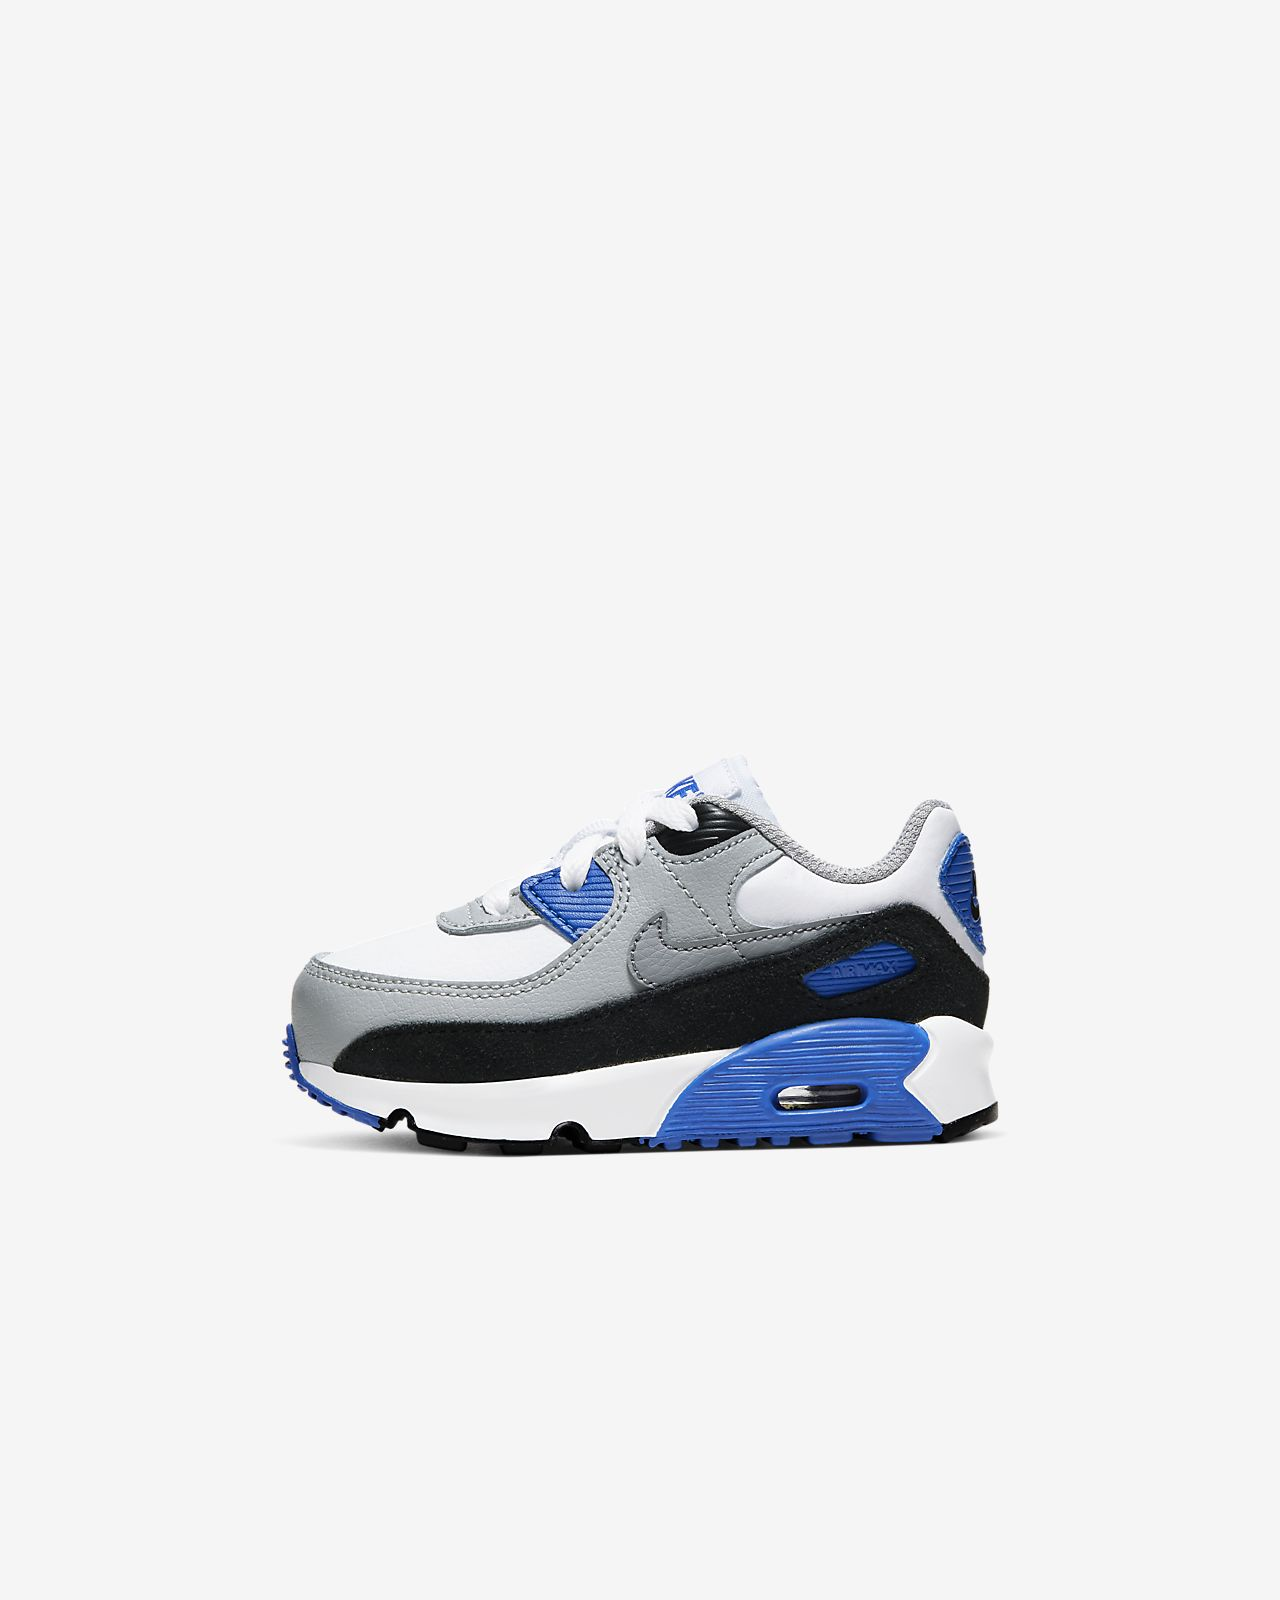 Nike Air Max 90 LTR Baby/Toddler Shoe